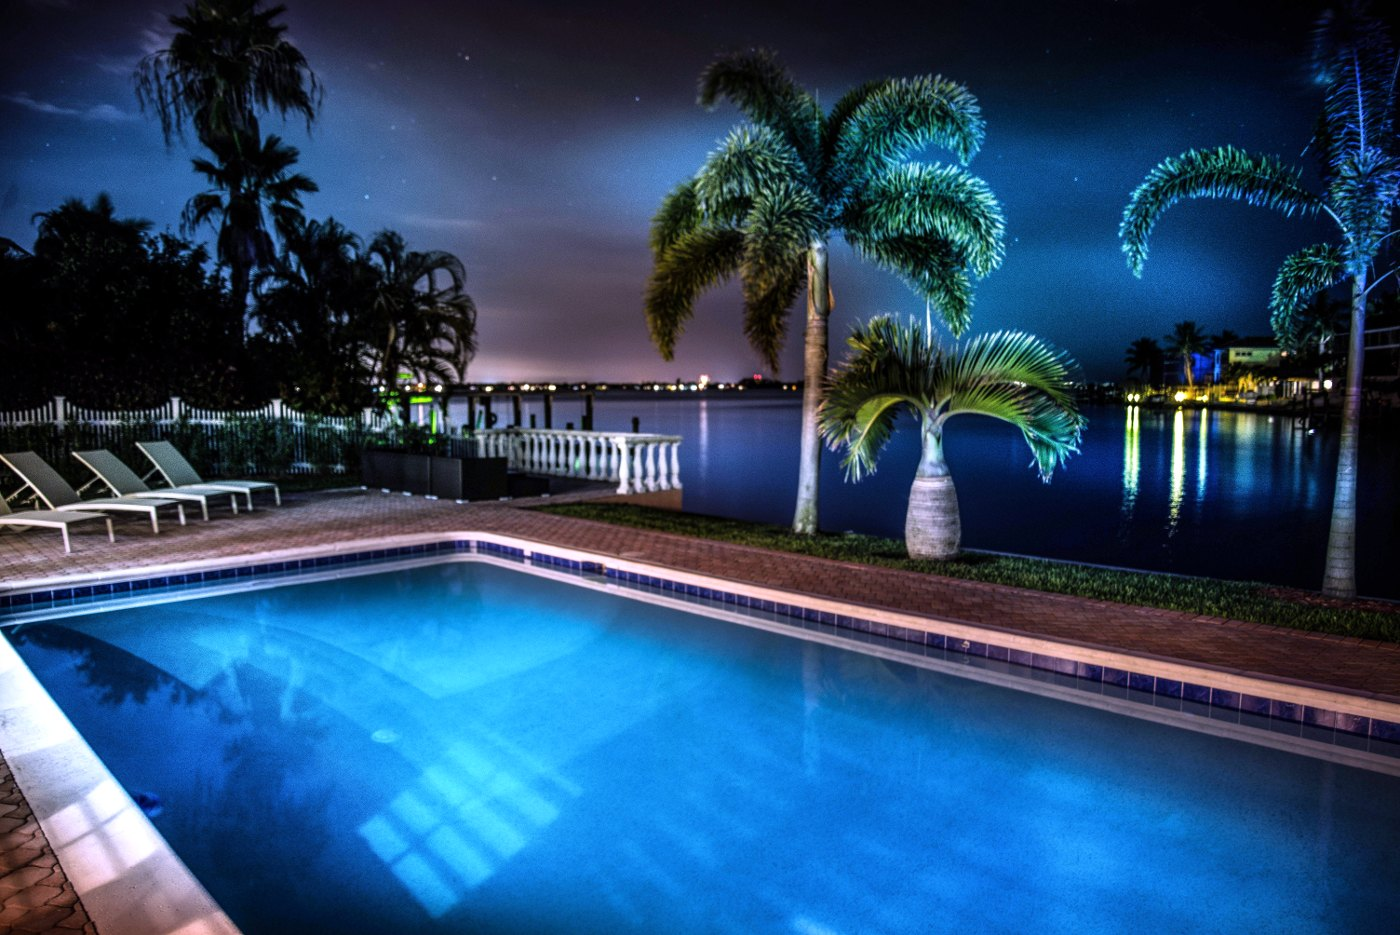 Pool Filterpumpe Ohne Strom Villa Spirit Of The River Ferienvilla In Florida